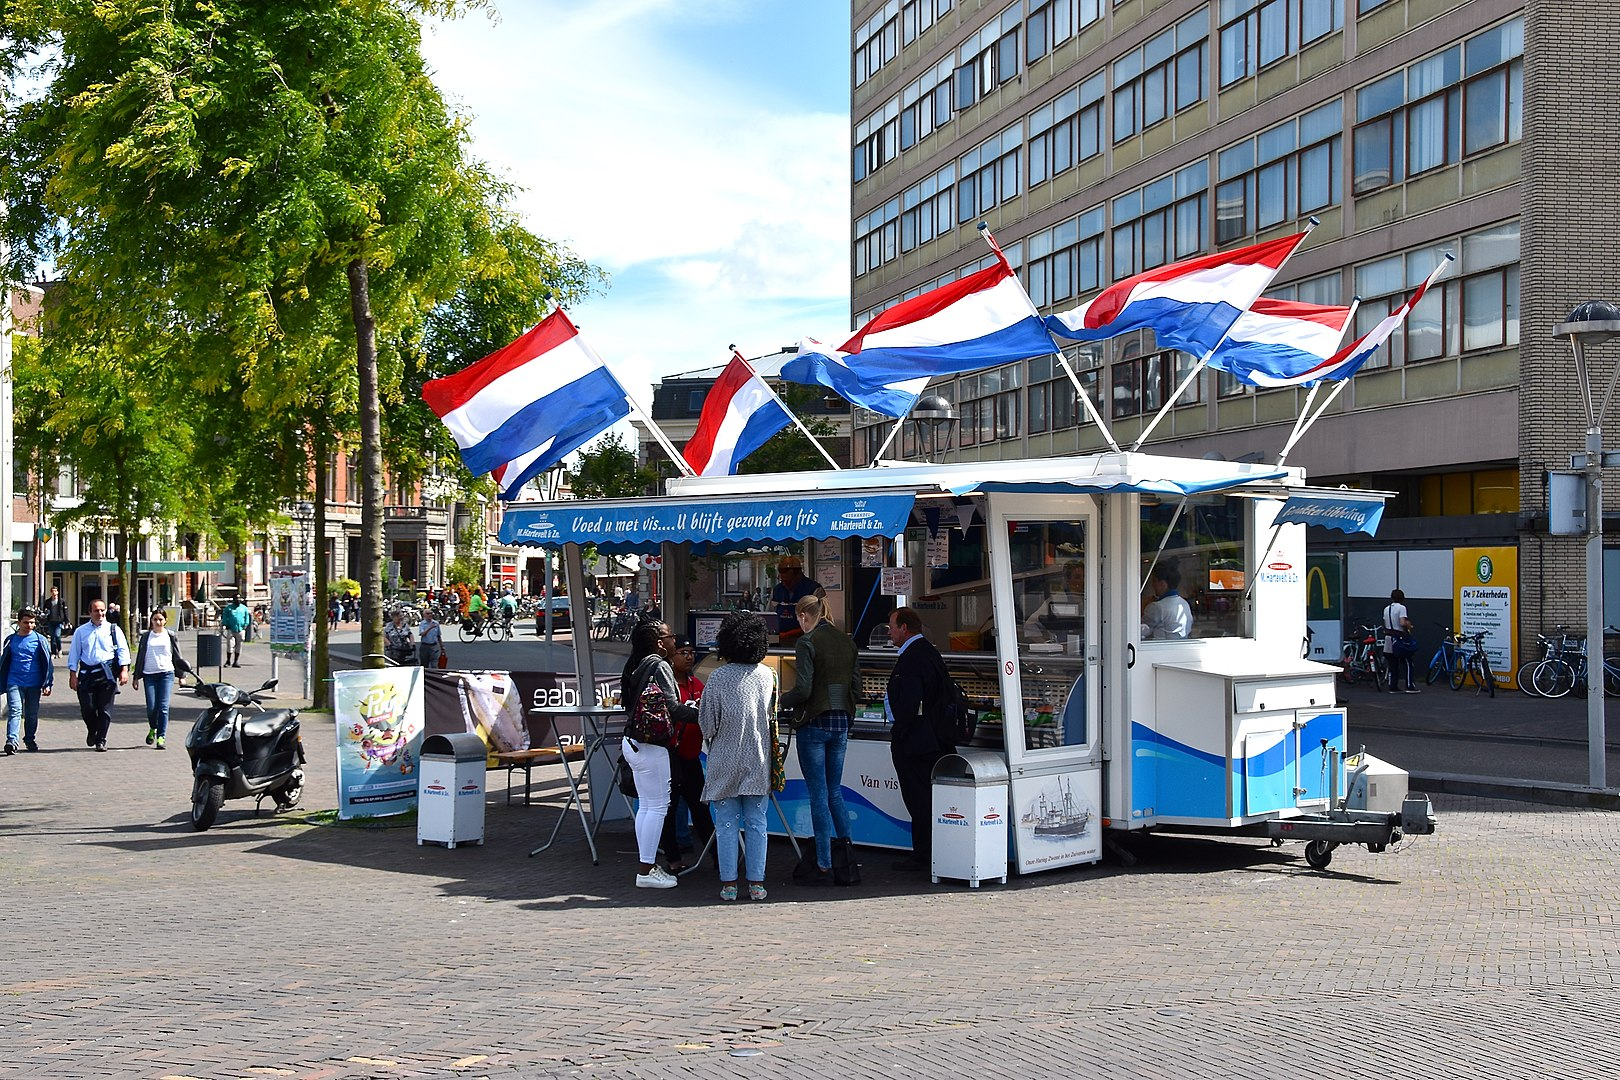 the best place to eat fish in the Netherlands